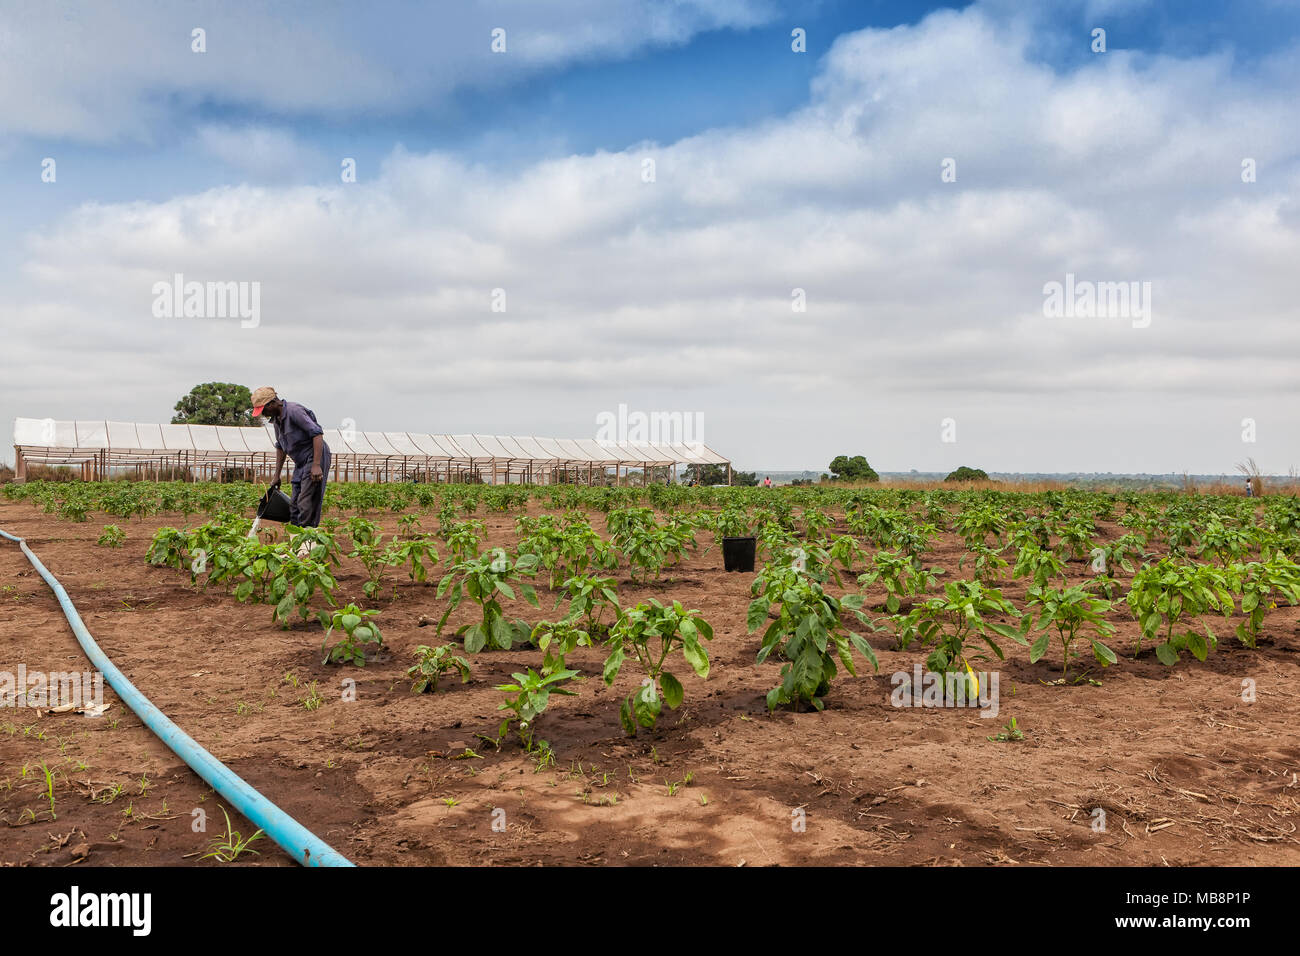 African farmer to watering plantation. - Stock Image